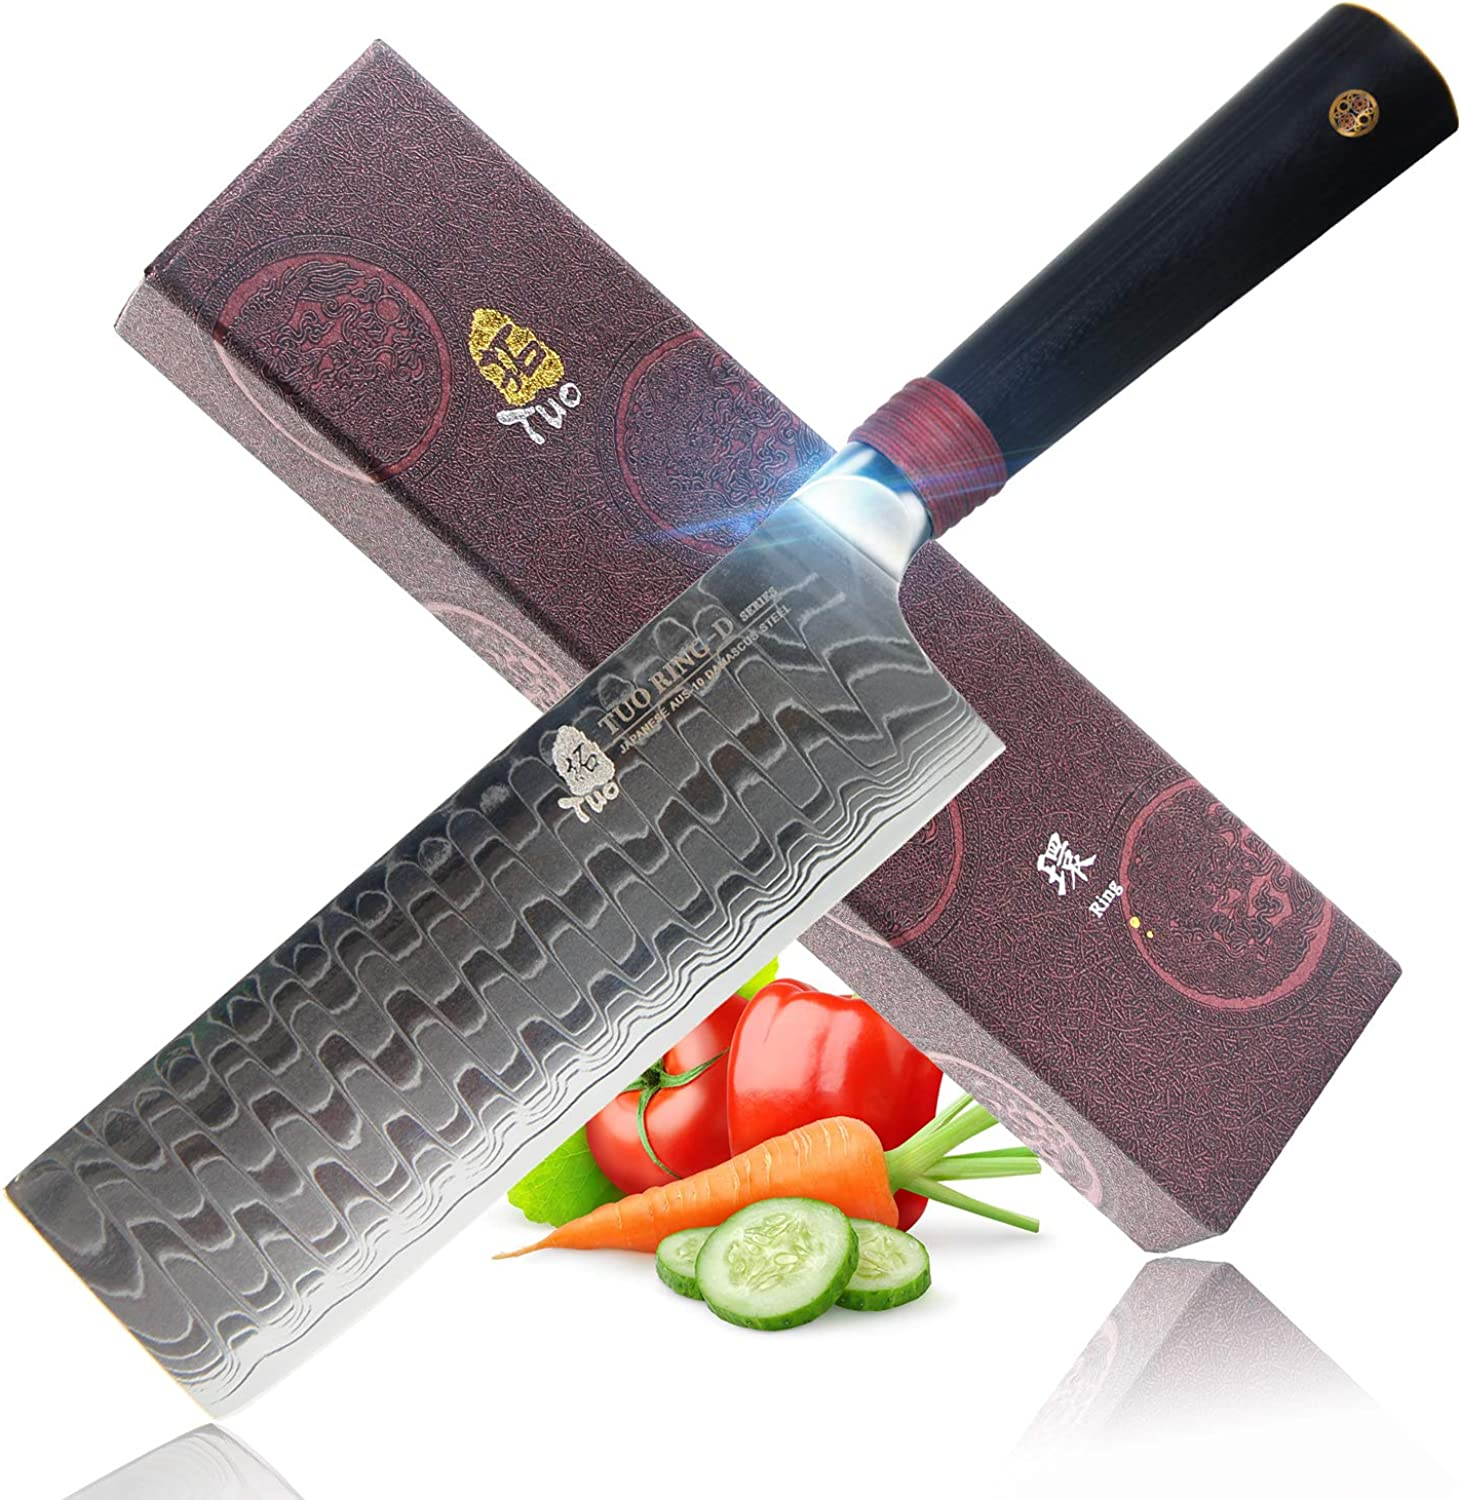 """TUO Cutlery Nakiri Knife 6.5"""" - Damascus Vegetable Cleaver Kitchen Knives - Japanese AUS-10 High Carbon Stainless Steel Cutting Core Blade - Damascus Pattern - G10 Handle - Gift Box - Ring-D Series"""